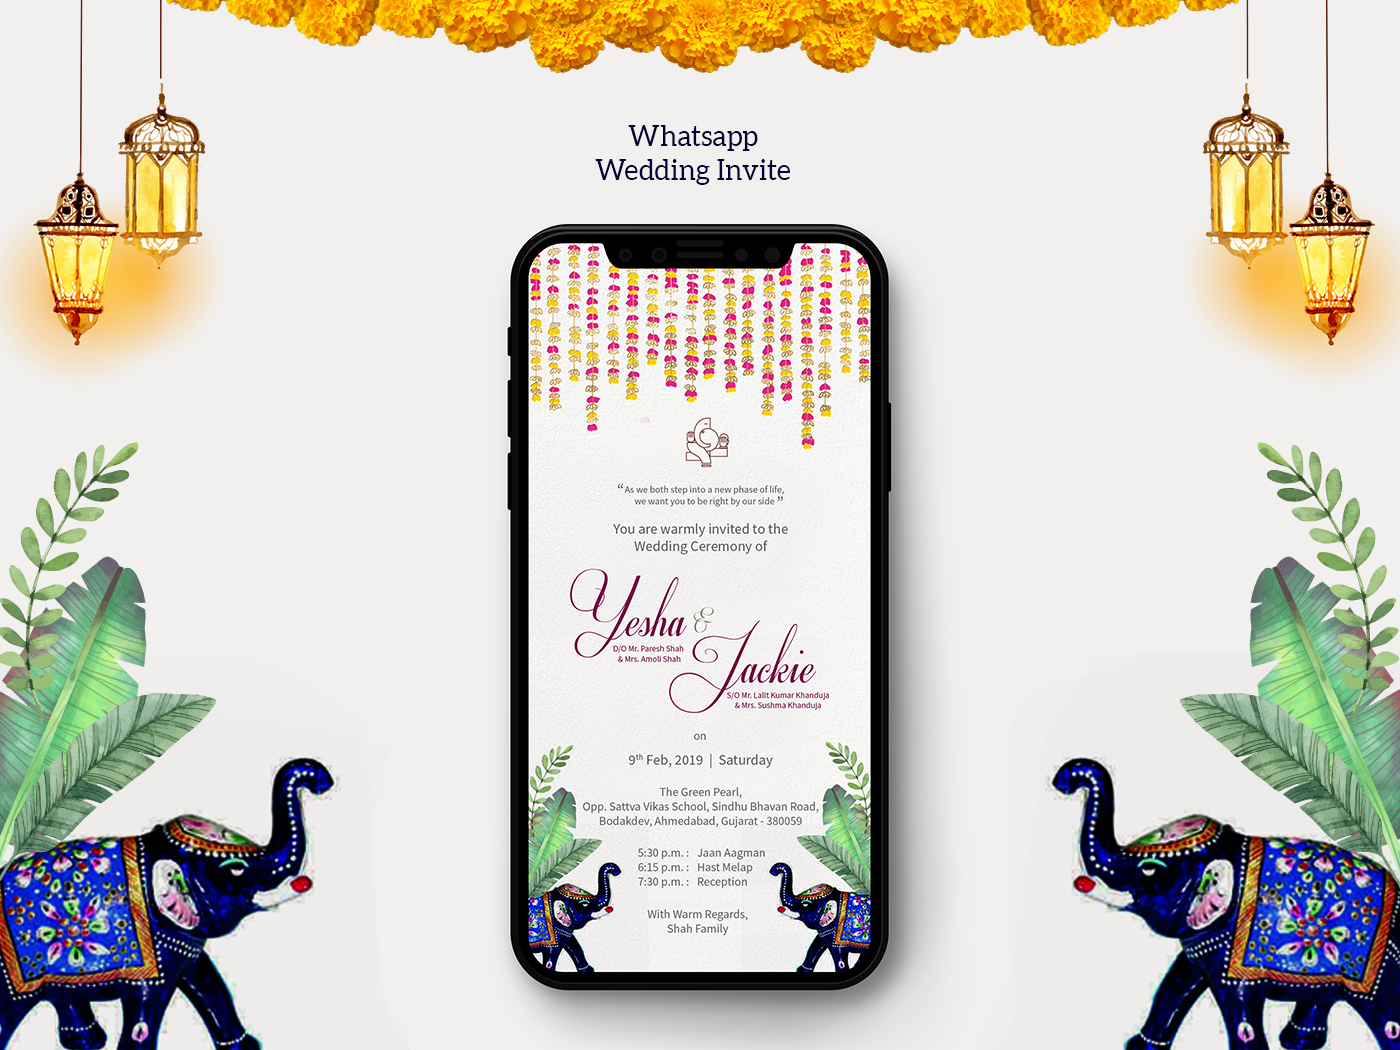 Whatsapp Wedding Invite By Maurvi On Dribbble